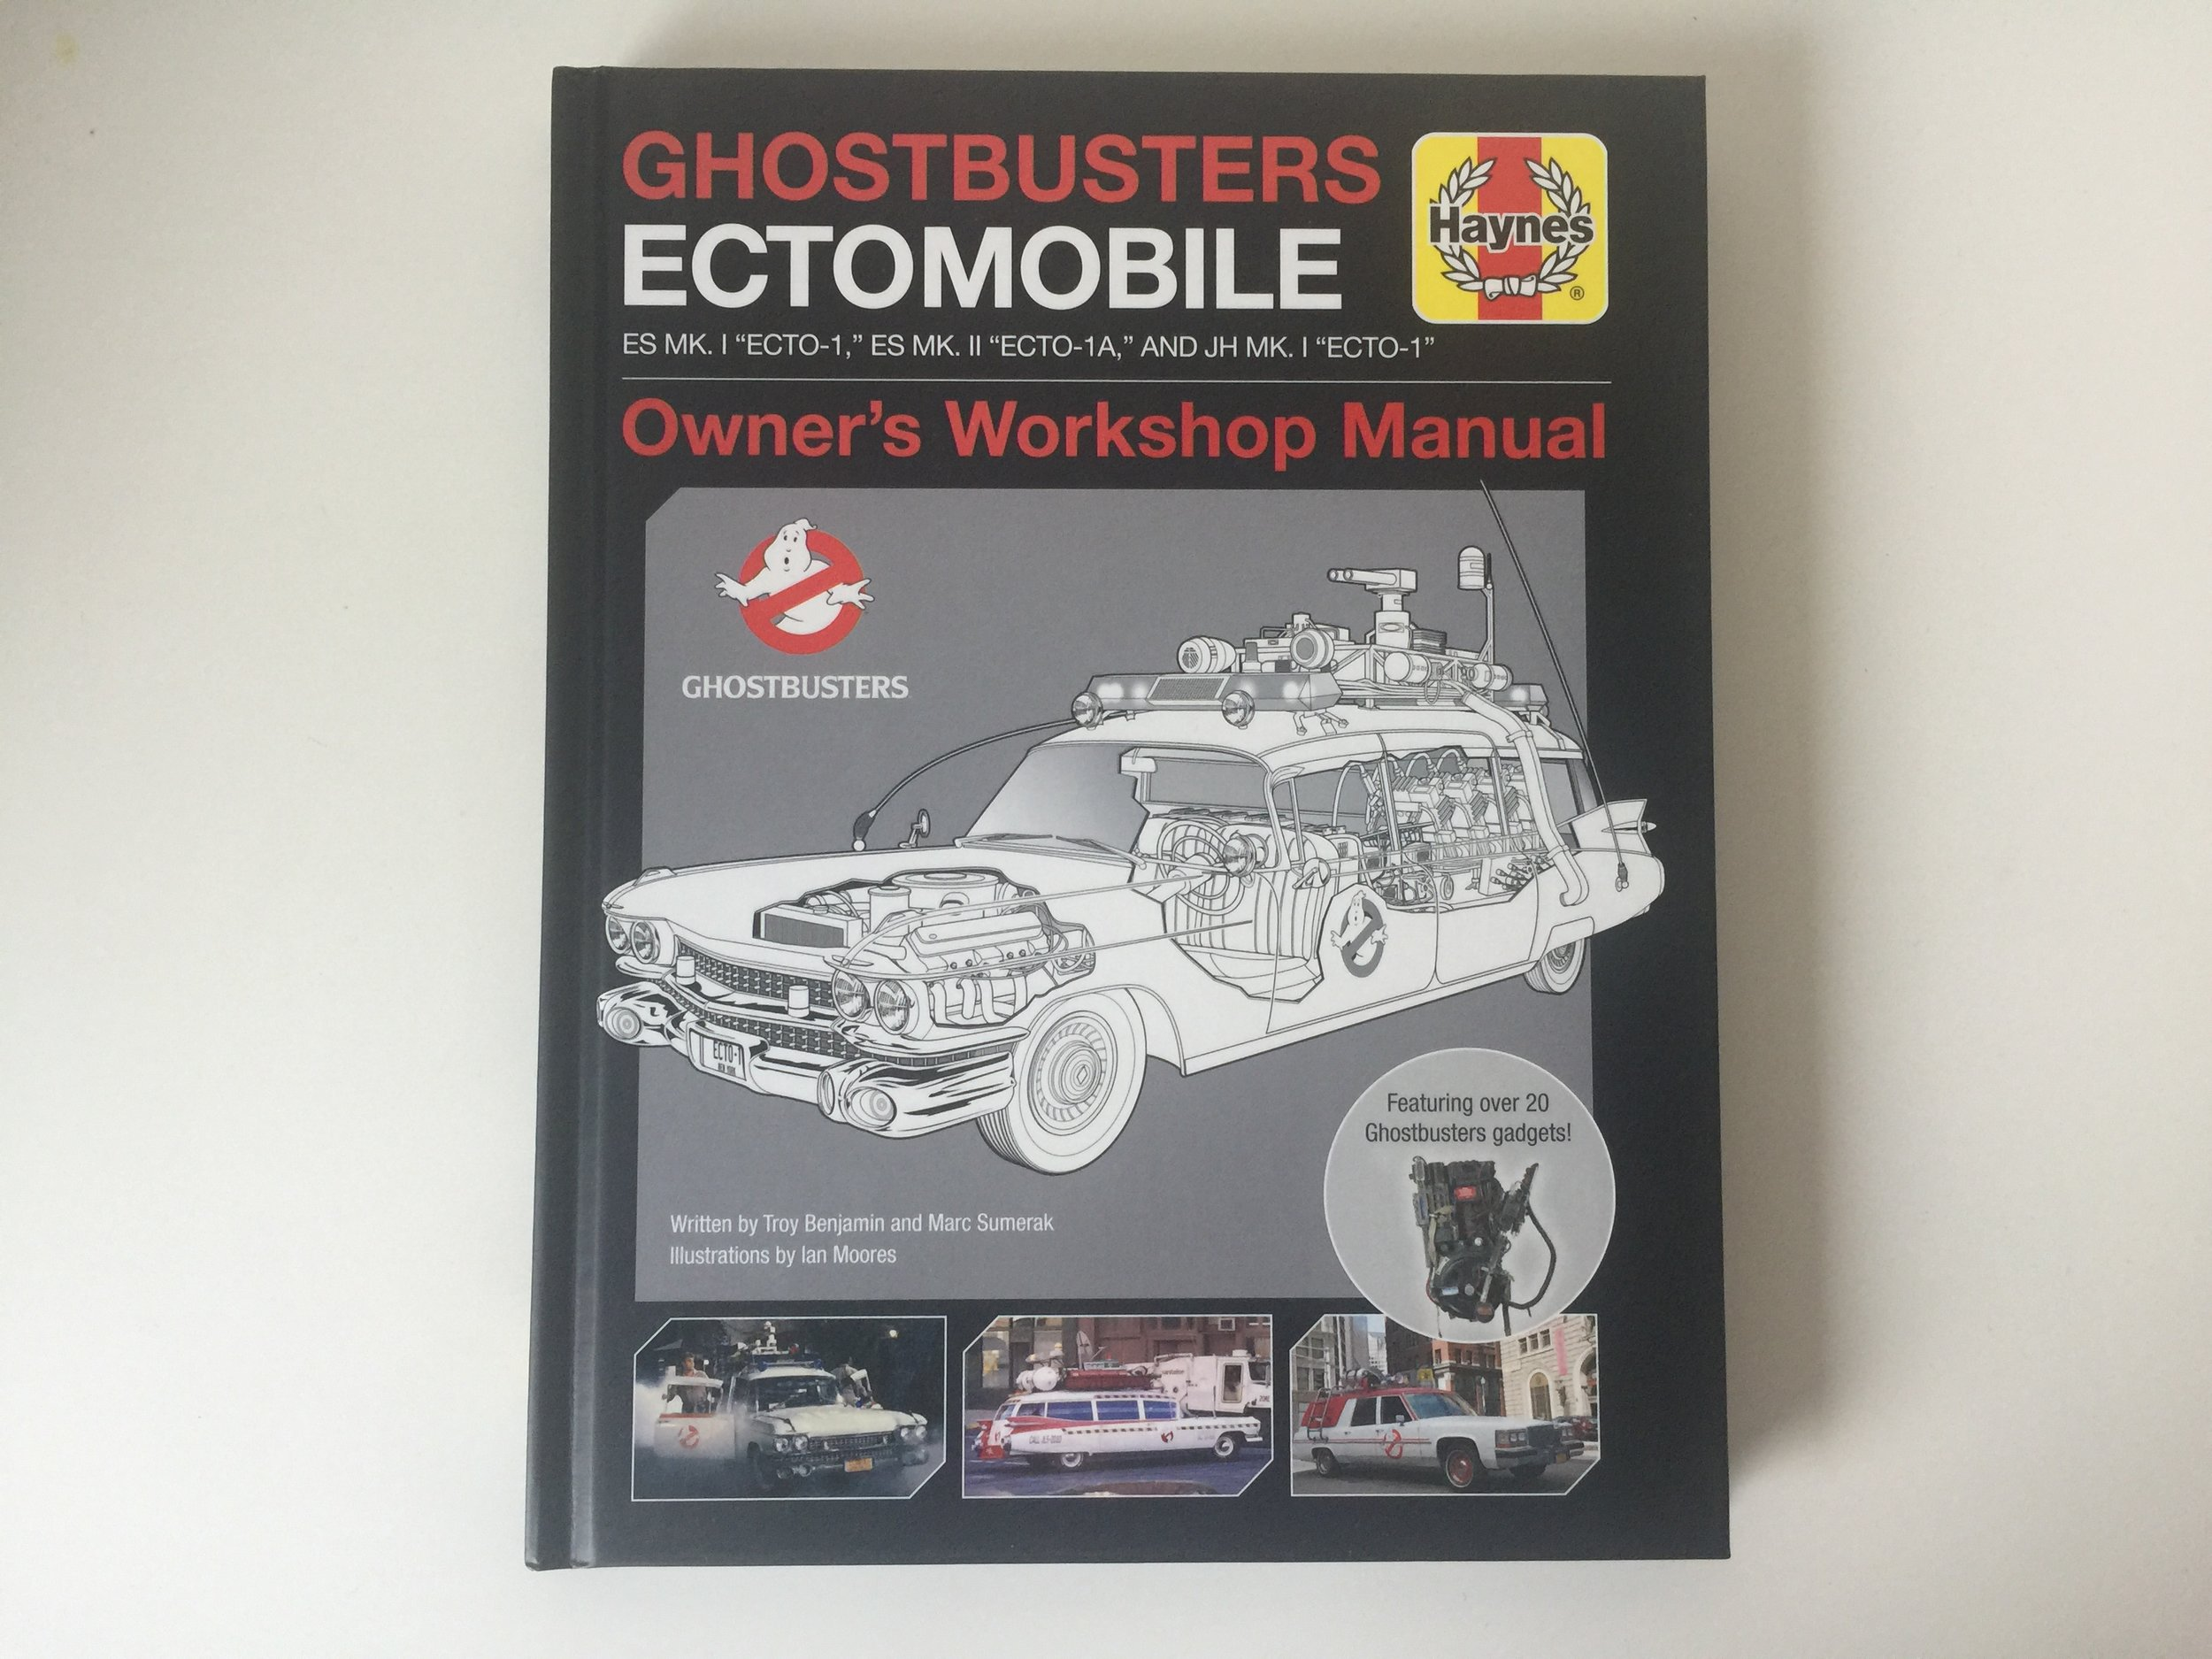 ghostbusters_ectomobile_owners_workshop_manual.JPG